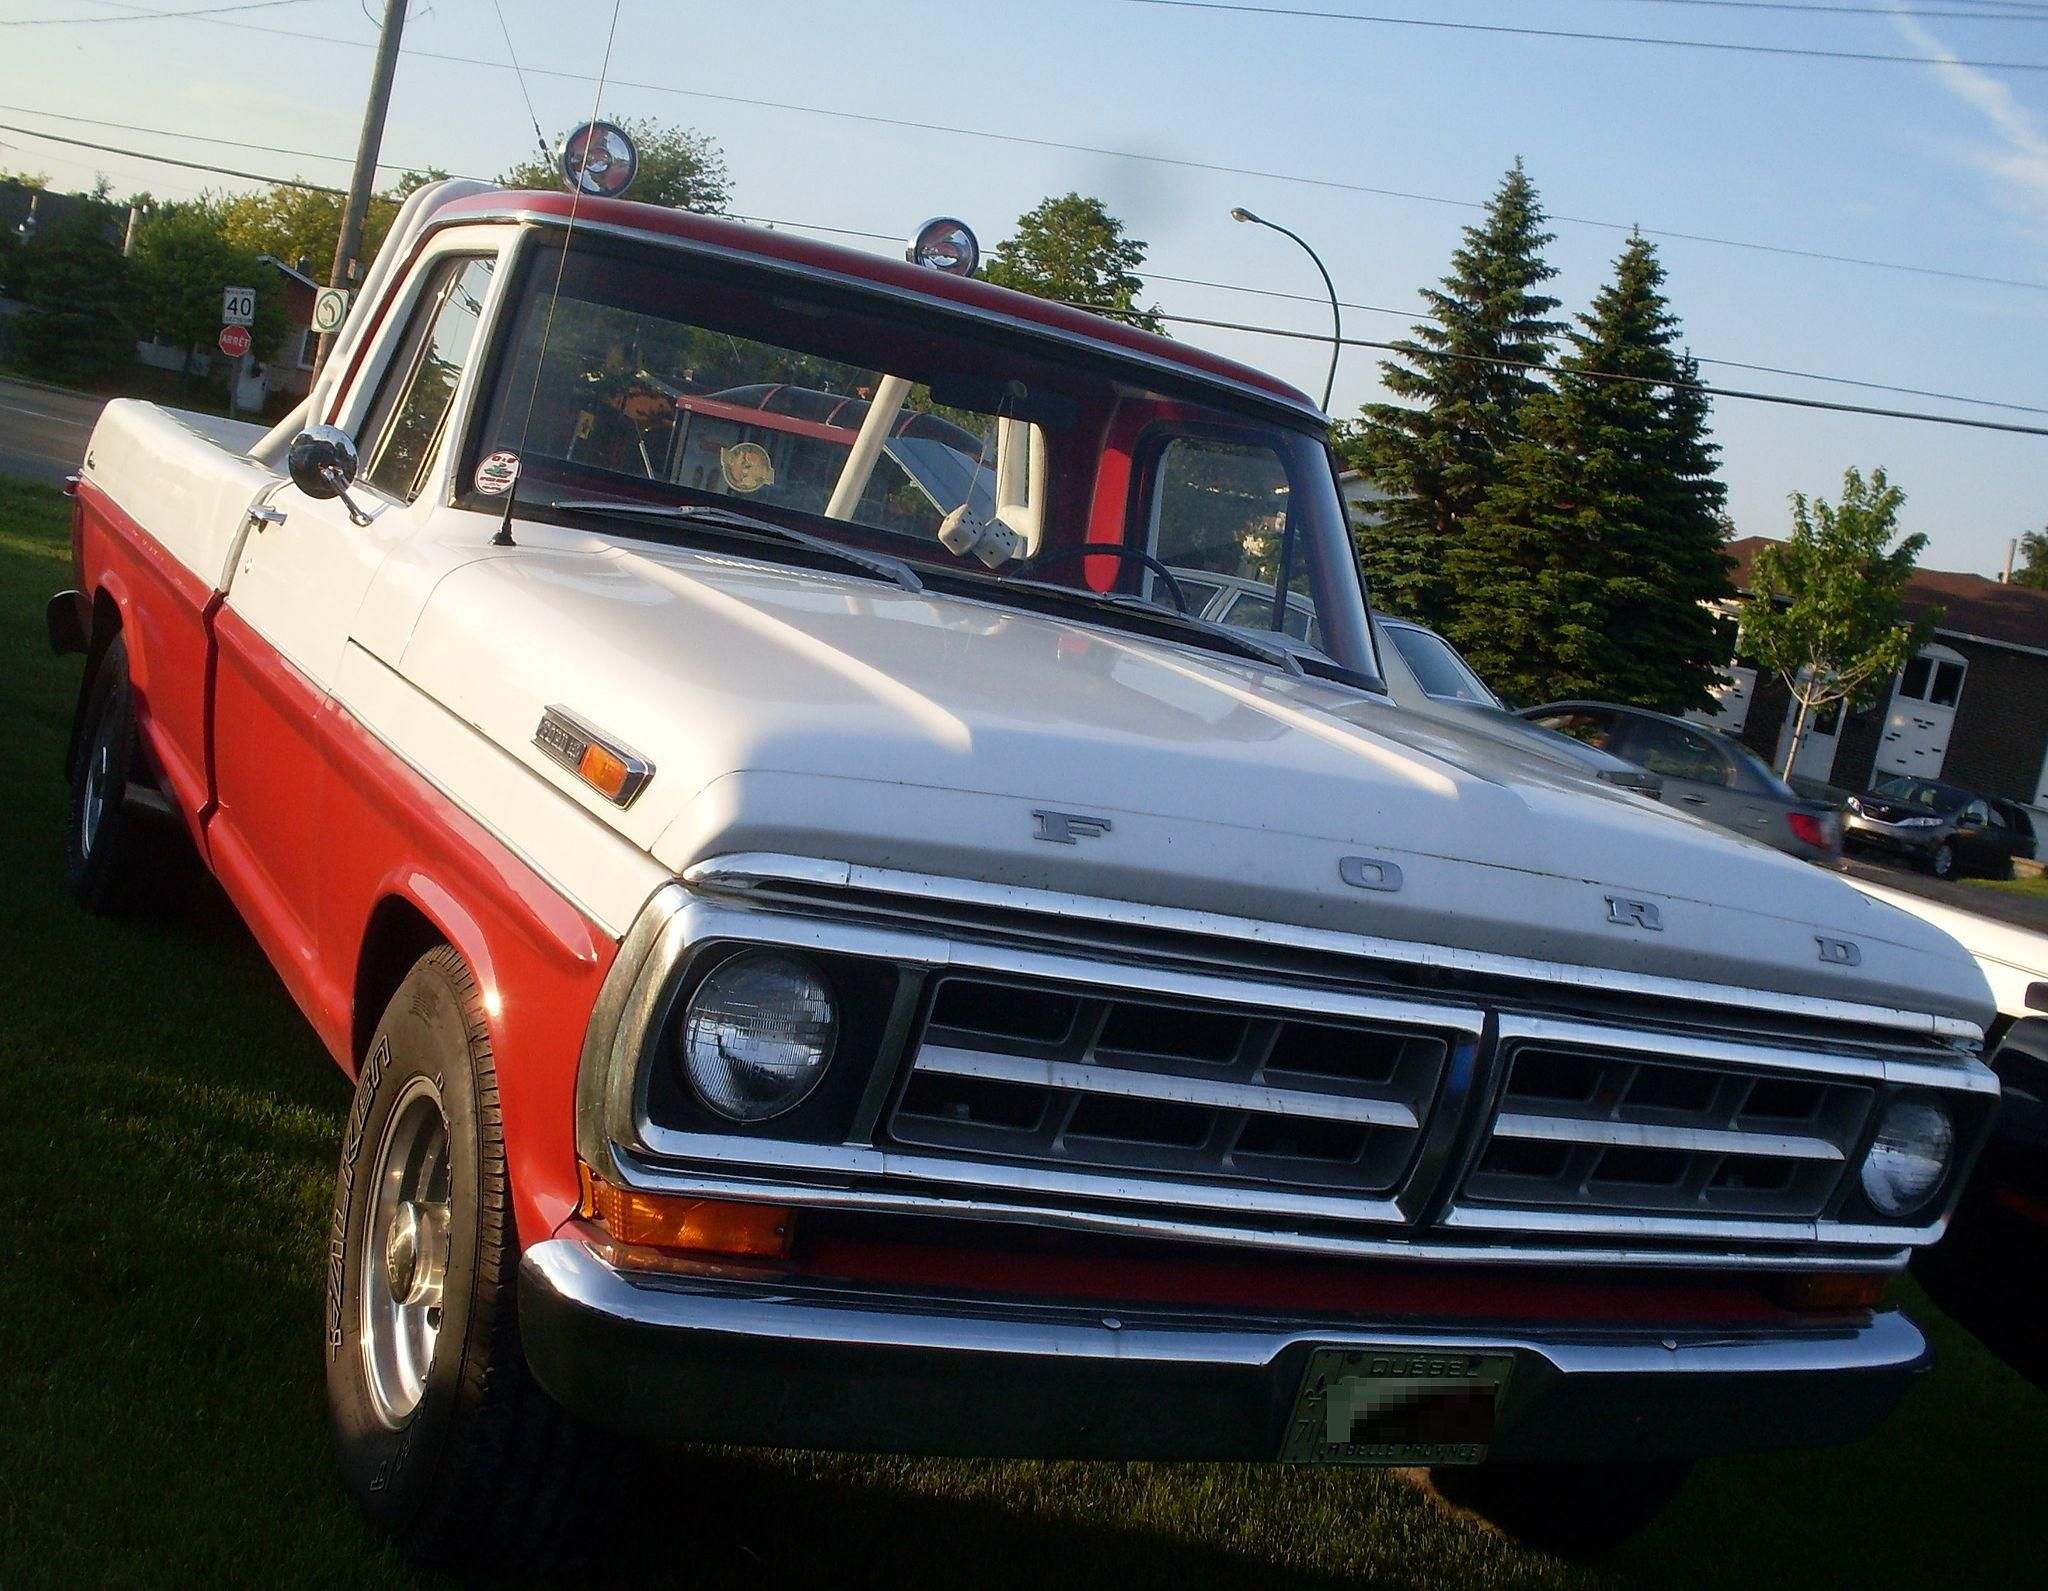 [DIAGRAM_38IS]  Ford F-Series Pickup Truck History From 1973-1979 | Custom 1980 Ford F 150 Engine Diagram |  | LiveAbout